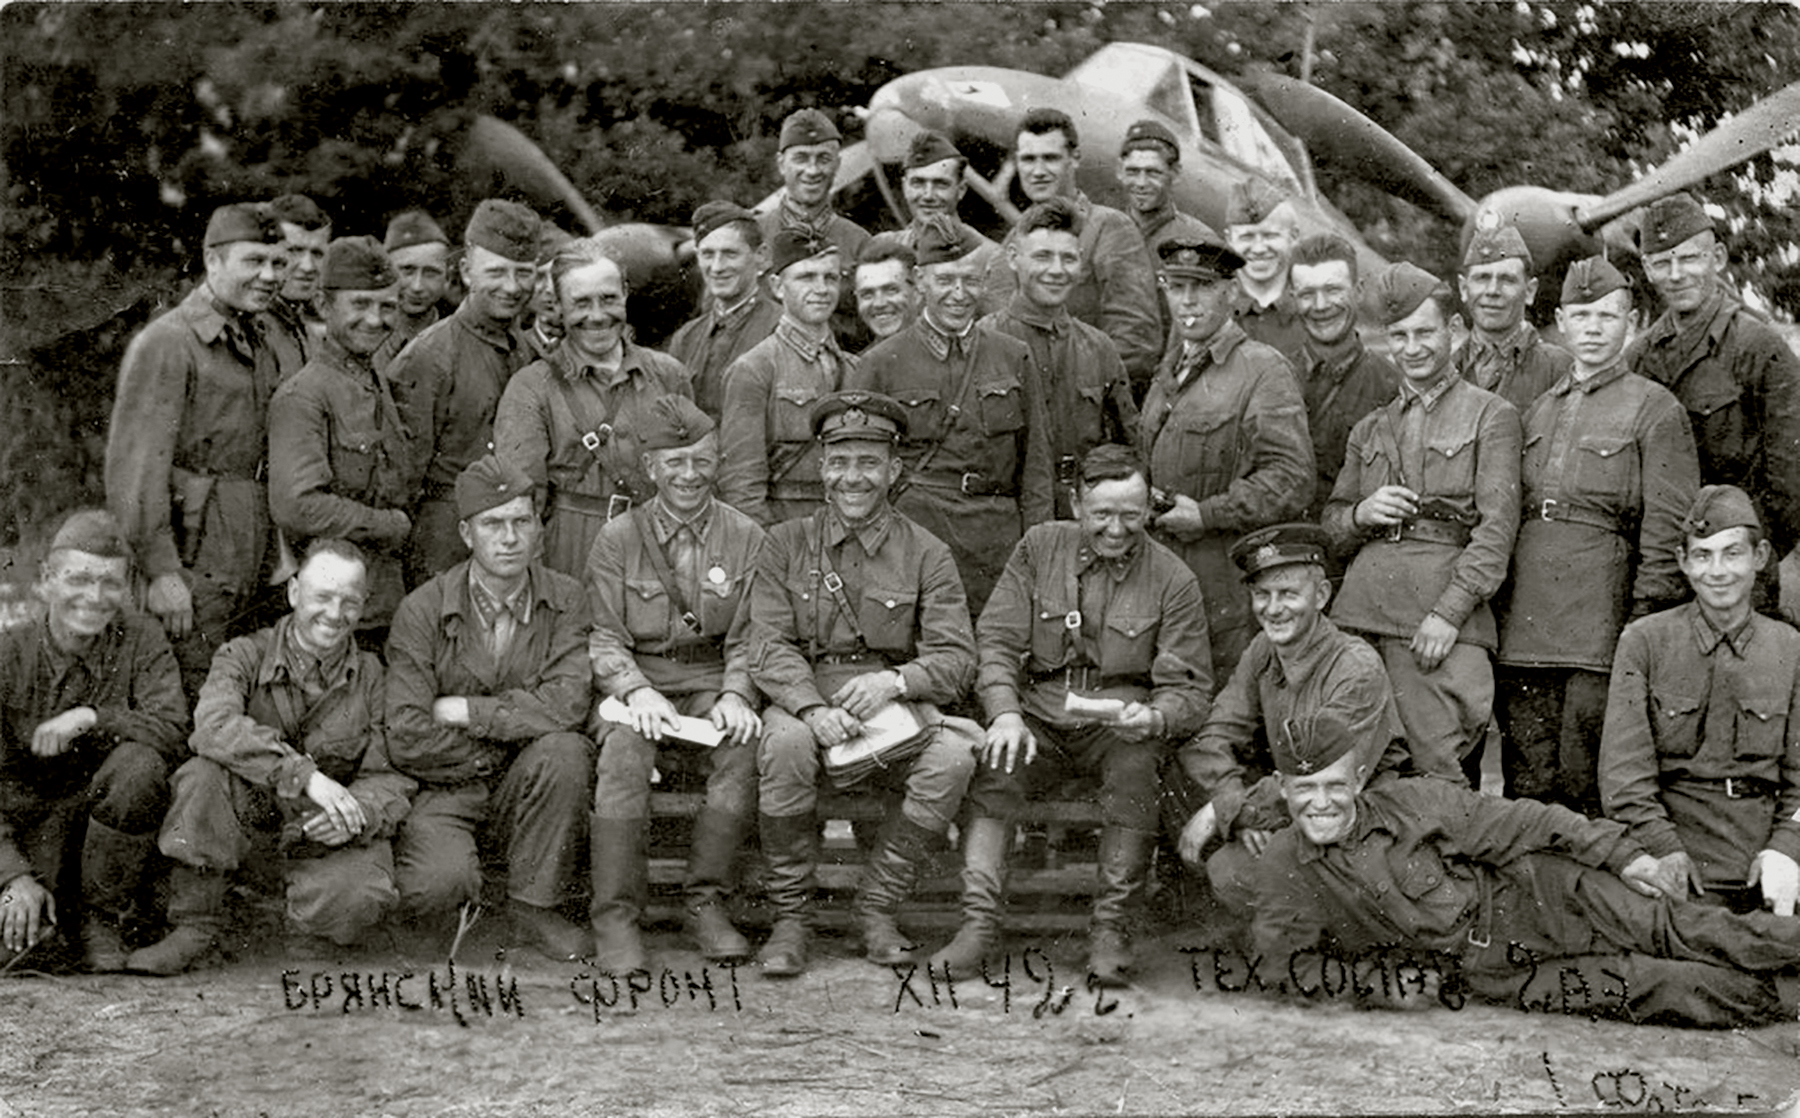 Aircrew Soviet 99GvDRAP goup photo of technical staff operating on the Bryansk Front 1942 01